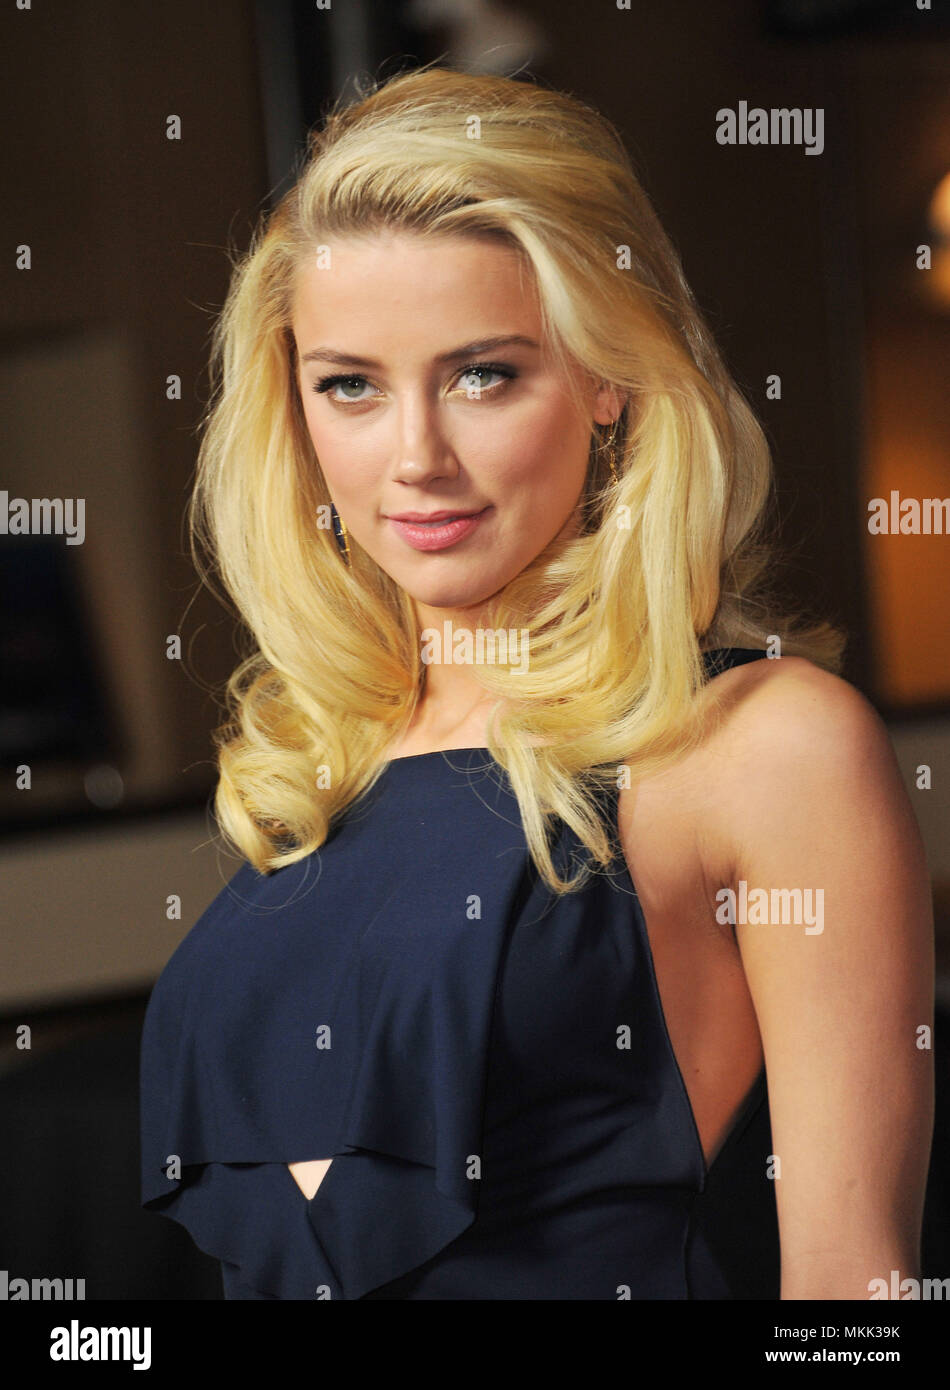 Amber Heard At The Dga Awards 2012 At The Kodak Theatre In Los Angeles Amber Heard 151 Red Carpet Event Vertical Usa Film Industry Celebrities Photography Bestof Arts Culture And Entertainment Topix Celebrities Fashion